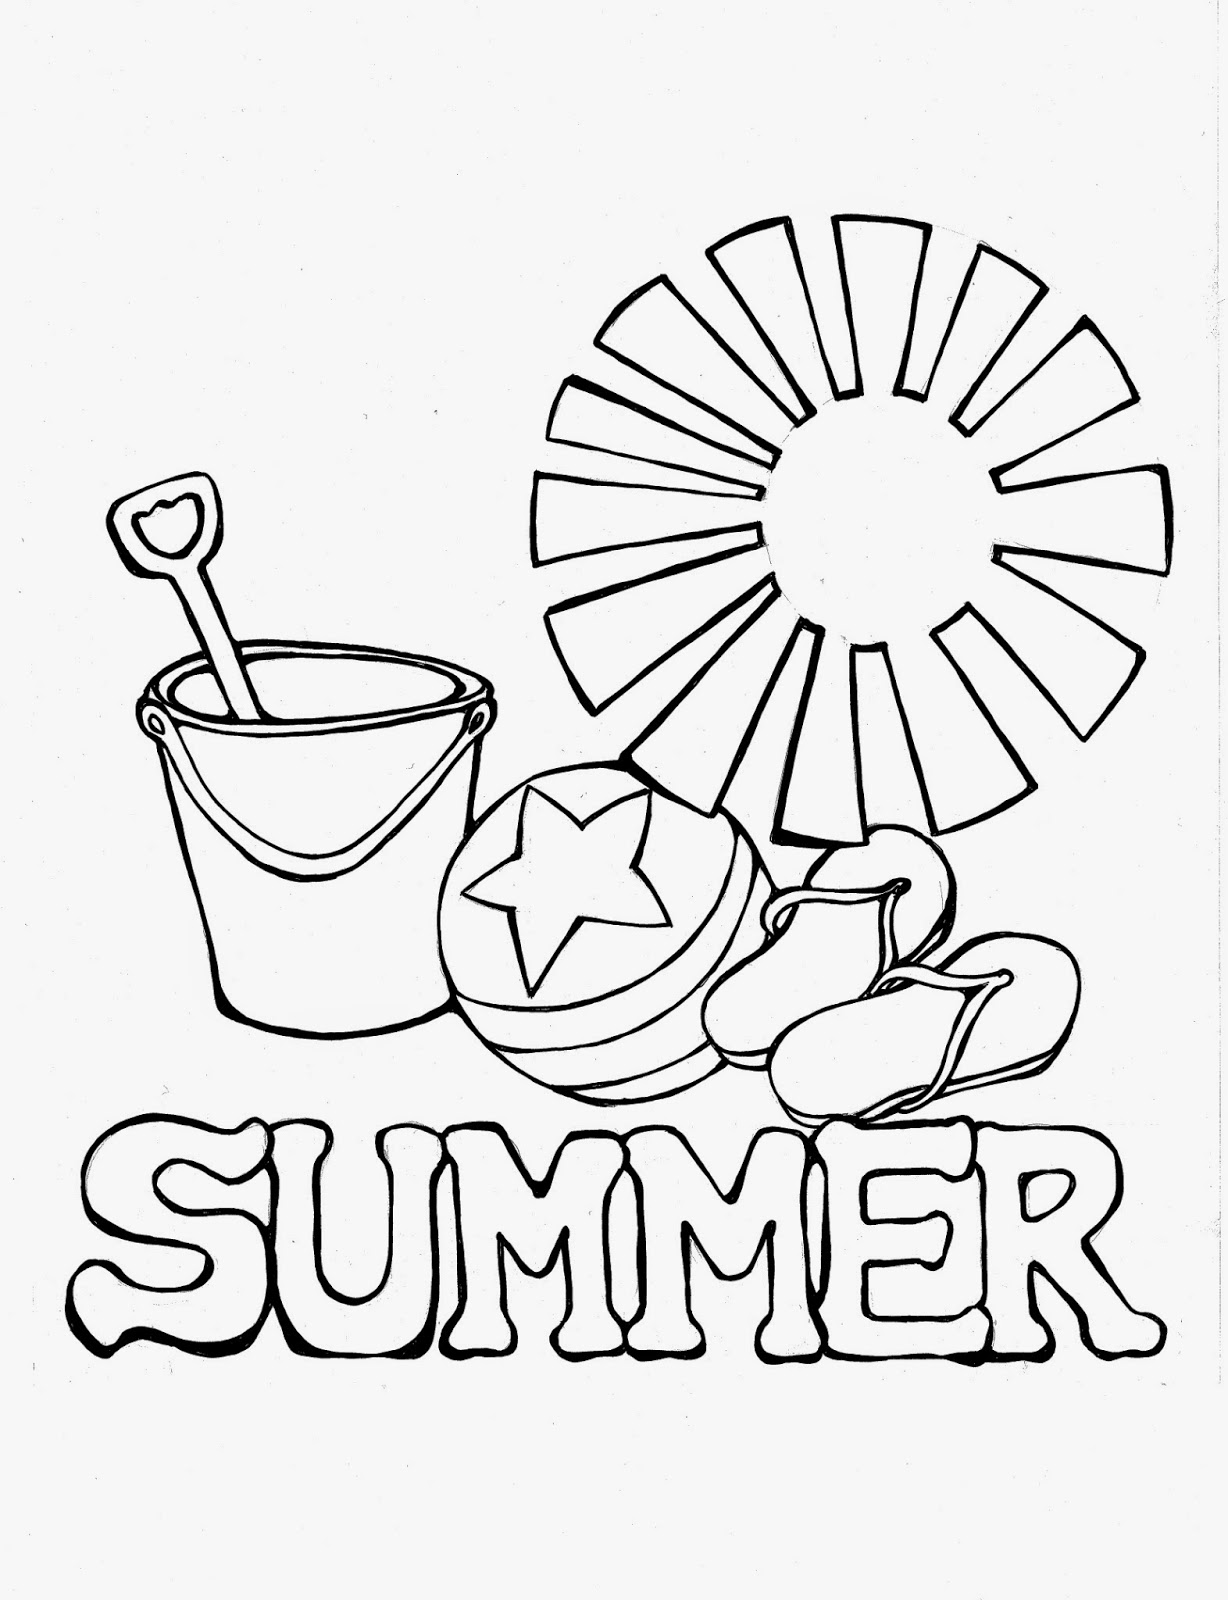 summertime coloring pages summer seasons janice39s daycare coloring pages summertime